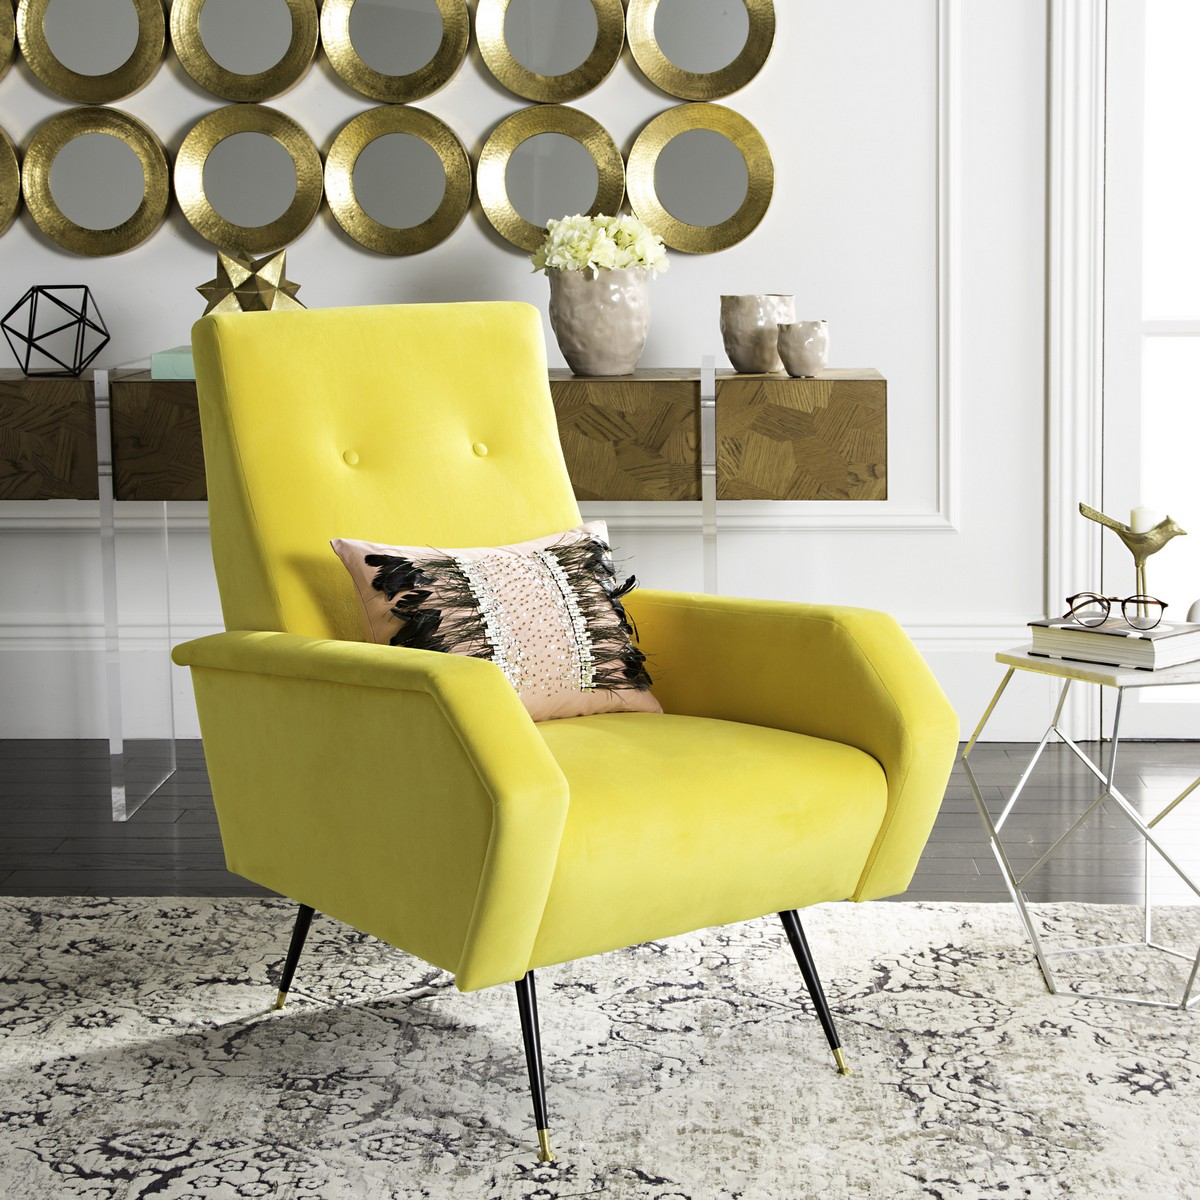 Energized With The Optimism Of Mid Century Modern Style, This Retro Accent  Chair Was Inspired By The Iconic Furnishings Of Top American Designers. Good Ideas